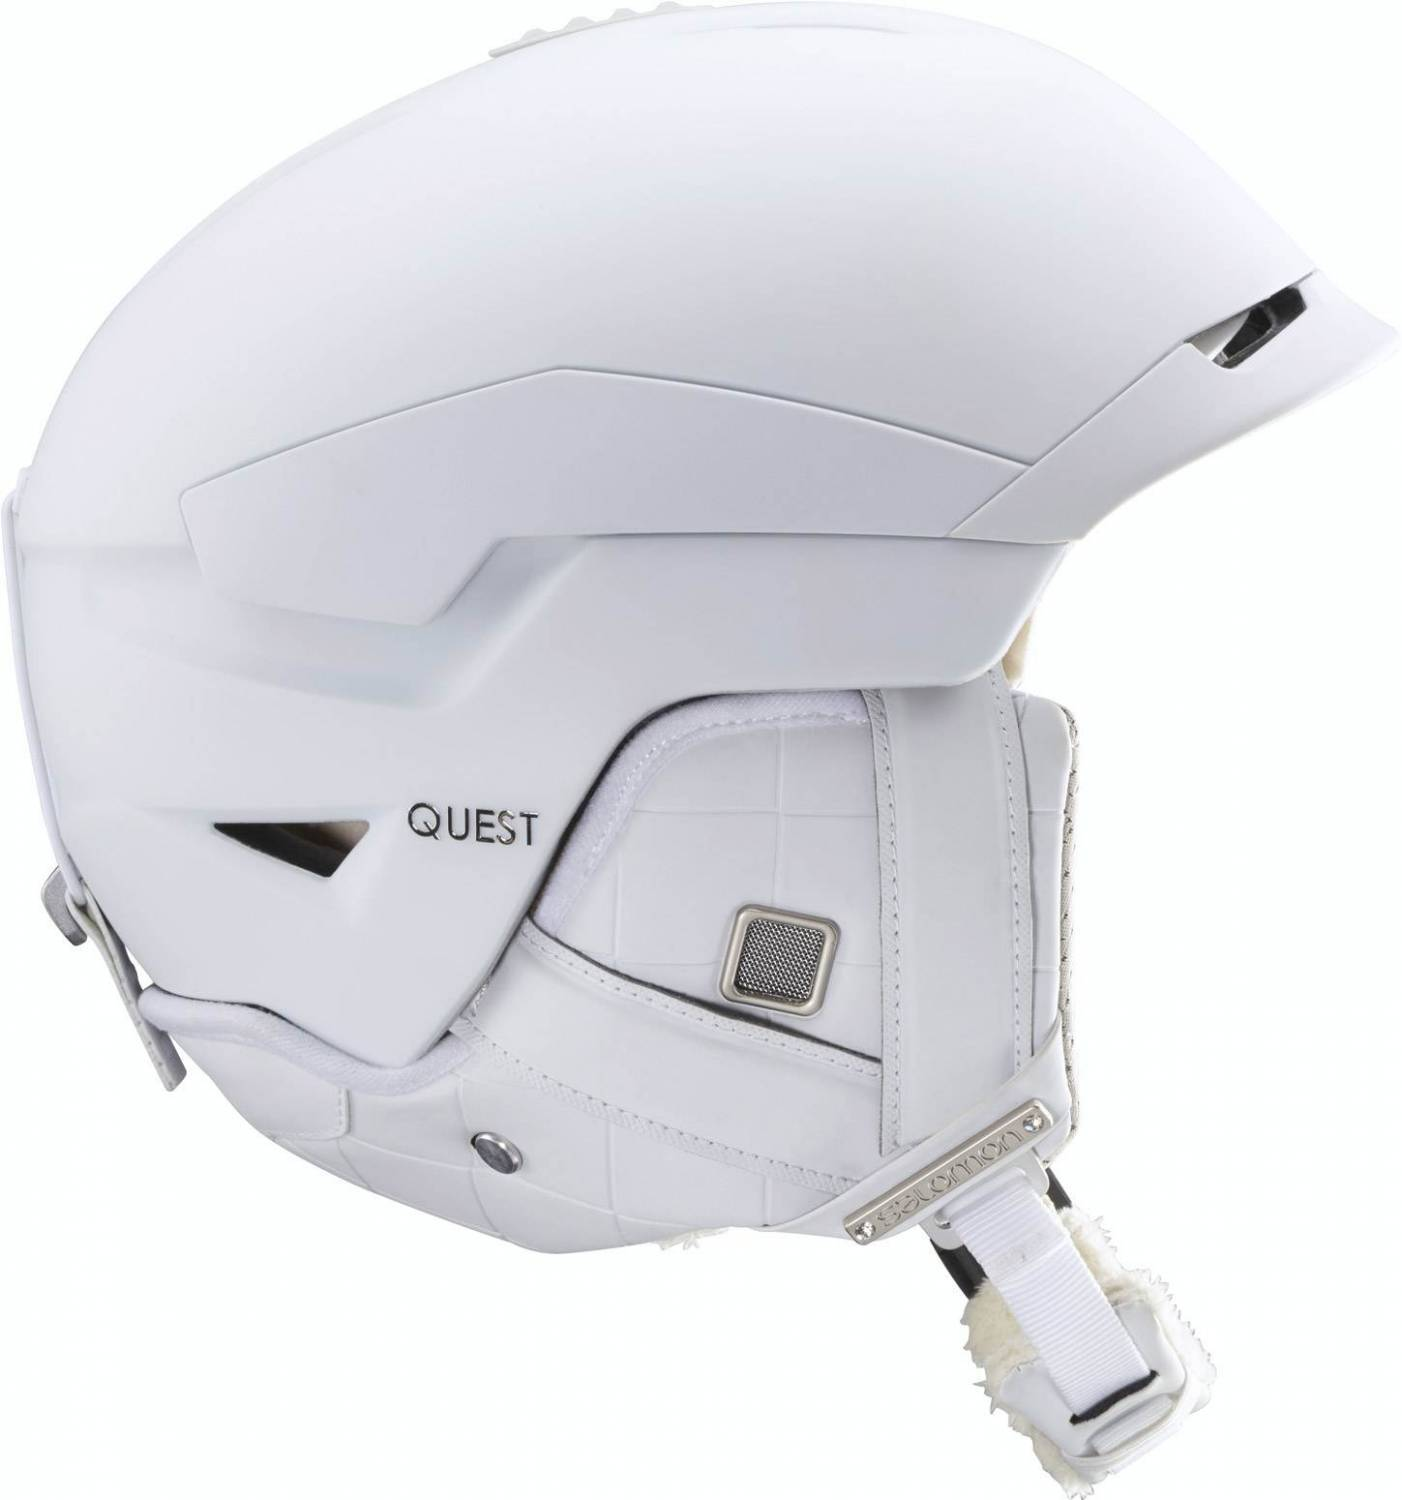 Cottbus Angebote Salomon Quest LTD Skihelm Women (Größe: 56-59 cm, white)